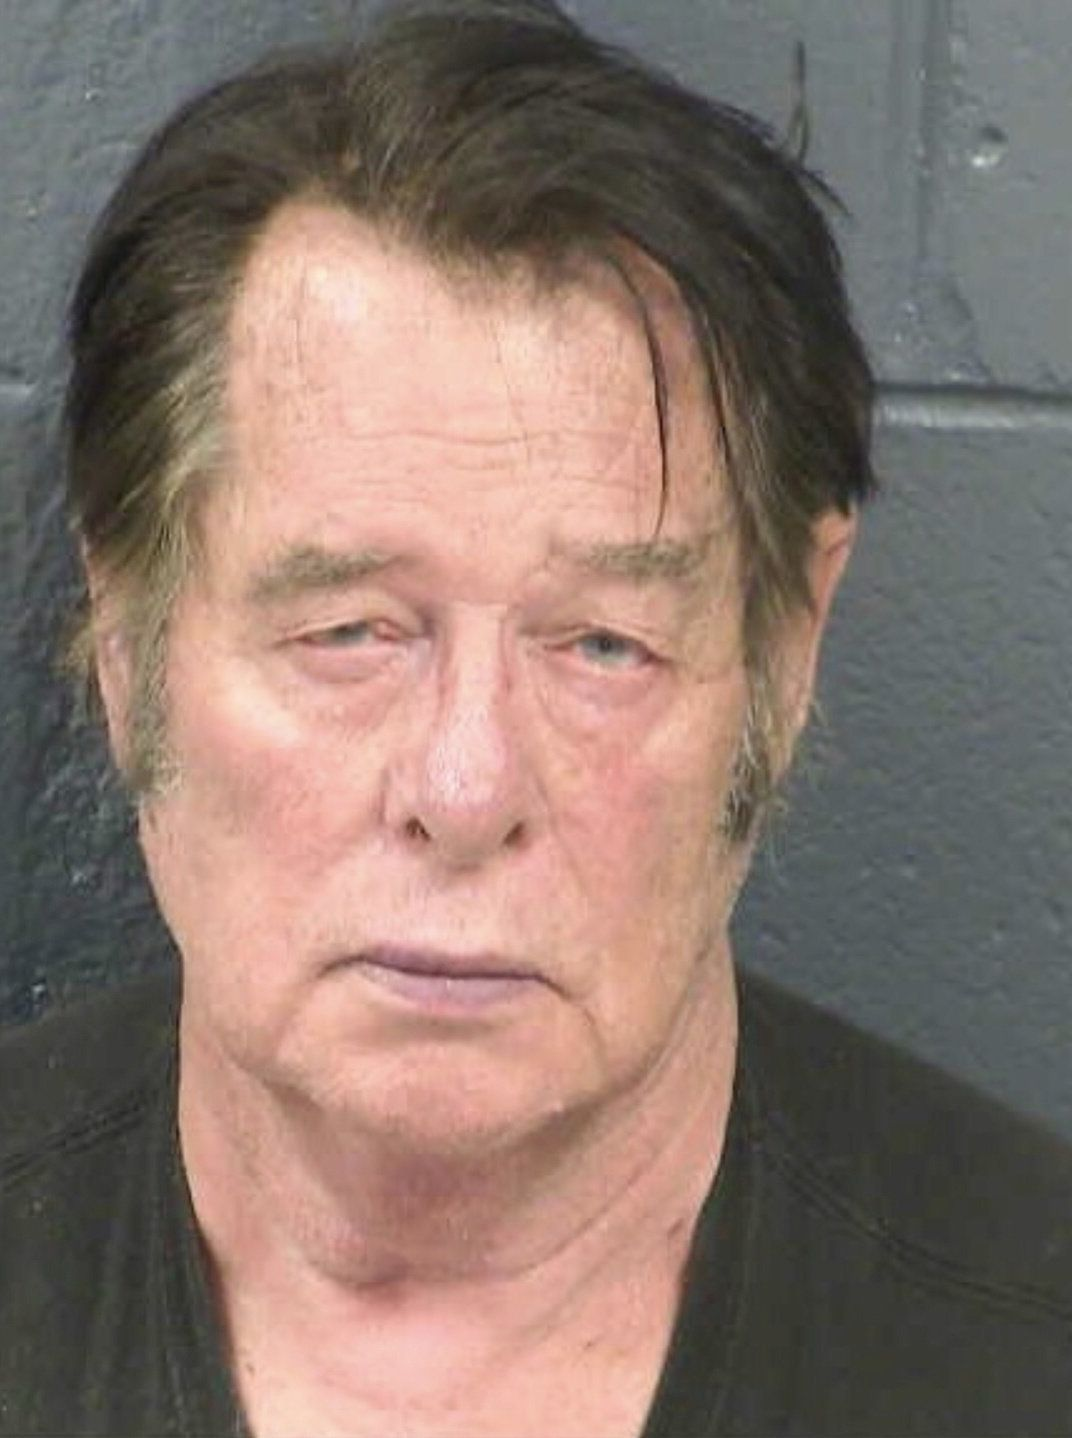 Larry Mitchell Hopkins appears in a police booking photo taken at the Dona Ana County Detention Center in Las Cruces, New Mexico, U.S., April 20, 2019. Picture taken April 20, 2019. Dona Ana County Detention Center/Handout via REUTERS.  ATTENTION EDITORS - THIS IMAGE WAS PROVIDED BY A THIRD PARTY.